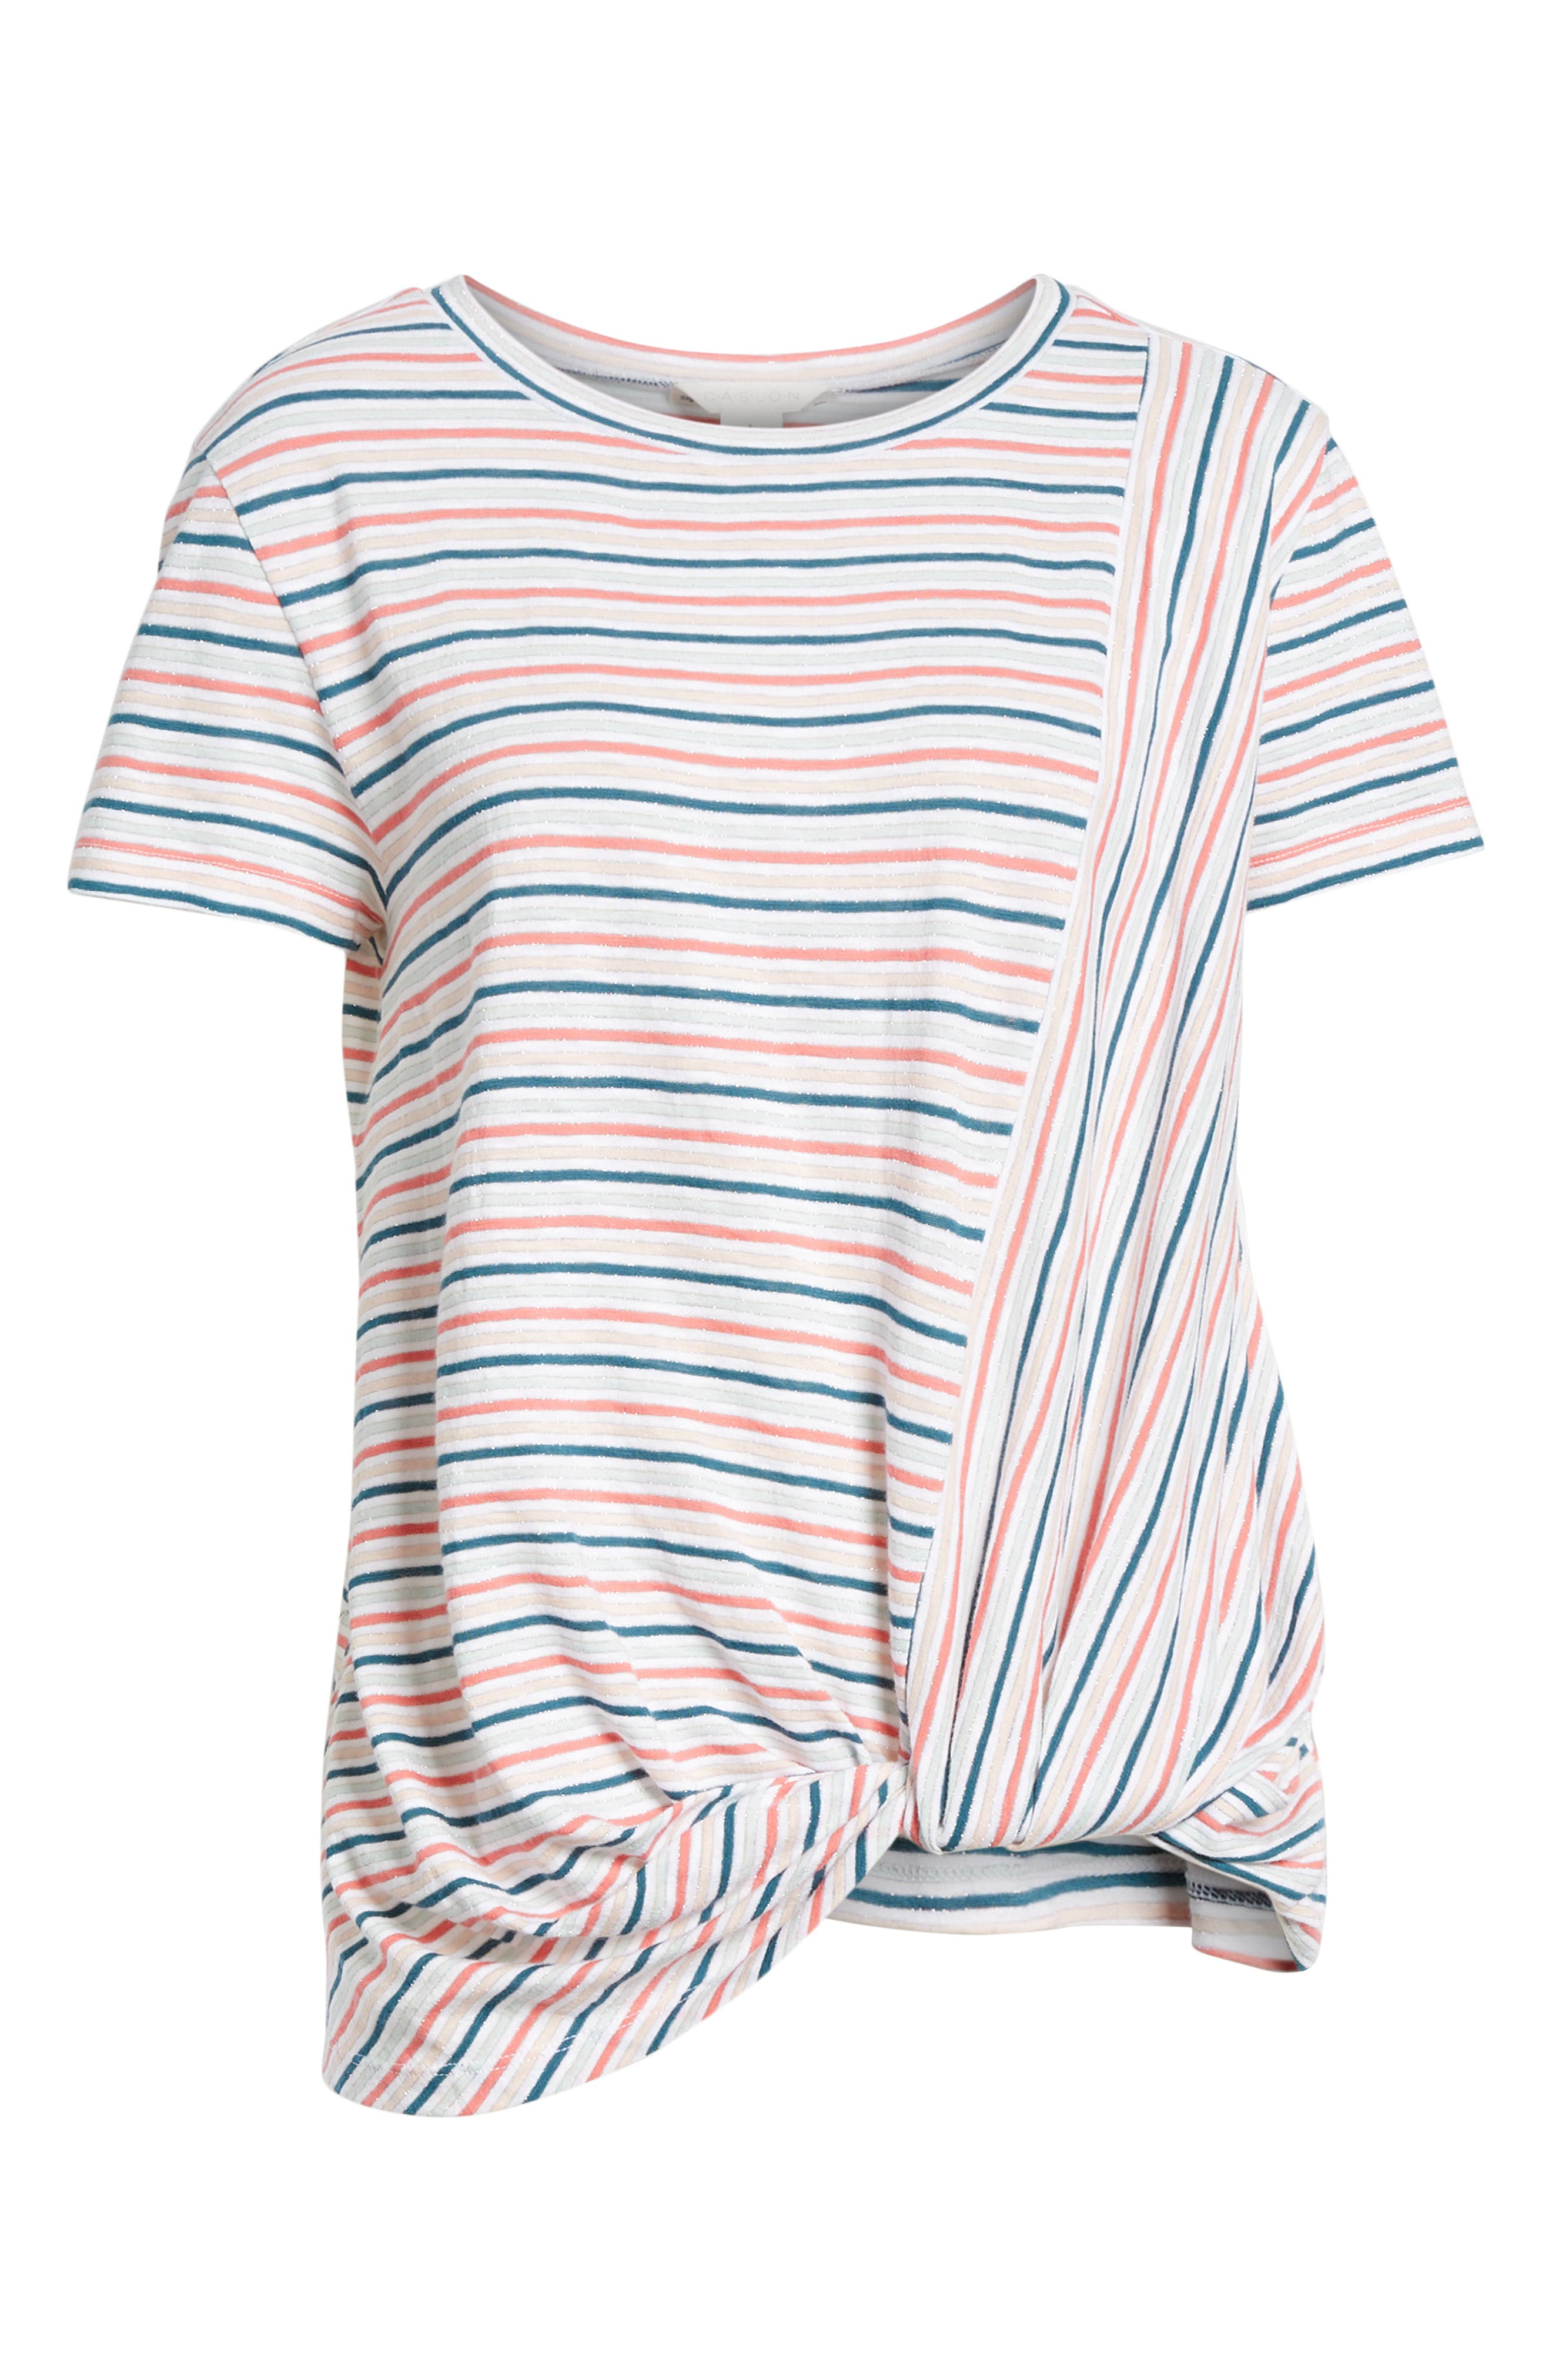 CASLON<SUP>®</SUP>, Metallic Stripe Knot Front Tee, Alternate thumbnail 6, color, IVORY- BLUE CANDY STP